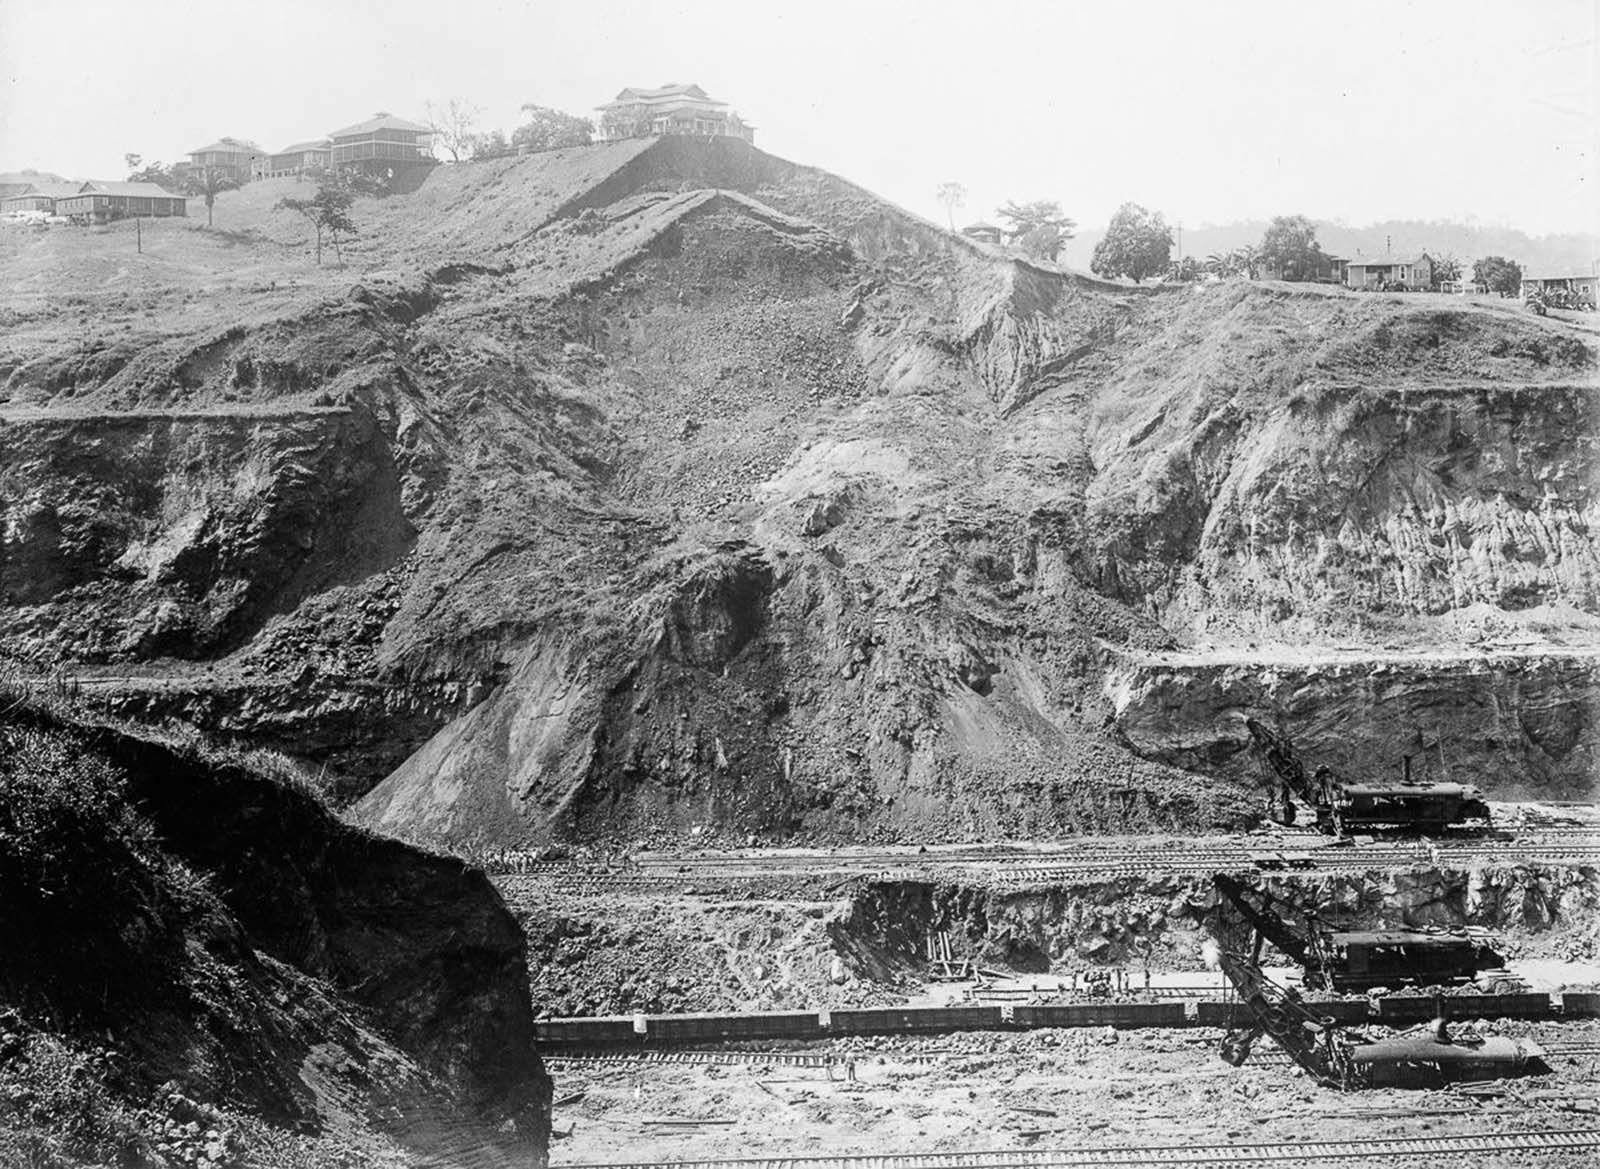 By August 1907, 765,000 m³ (1,000,000 cubic yards) per month was being excavated; this set a record for the rainy season; soon afterwards this doubled, before increasing again. At the peak of production, 2,300,000 m³ (3,000,000 cubic yards) were being excavated per month.